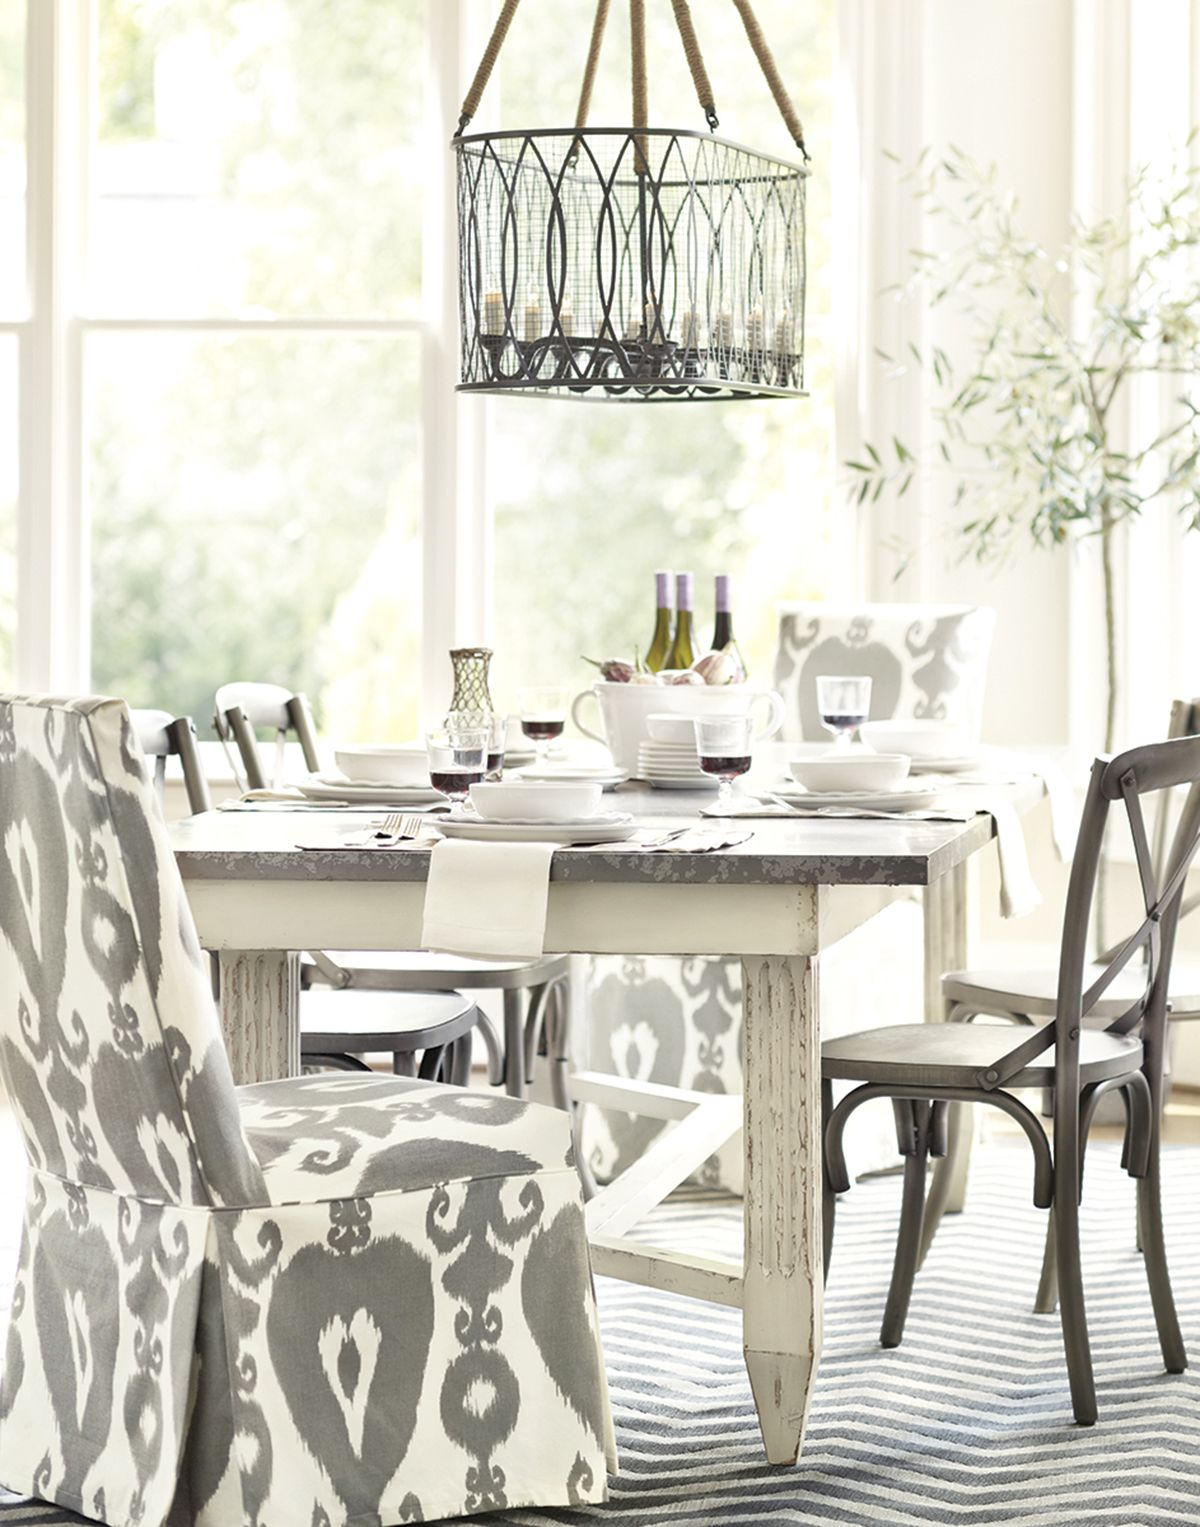 ballard designs dining chair slipcovers the chronicles of narnia silver 2016 photo gallery gray room and